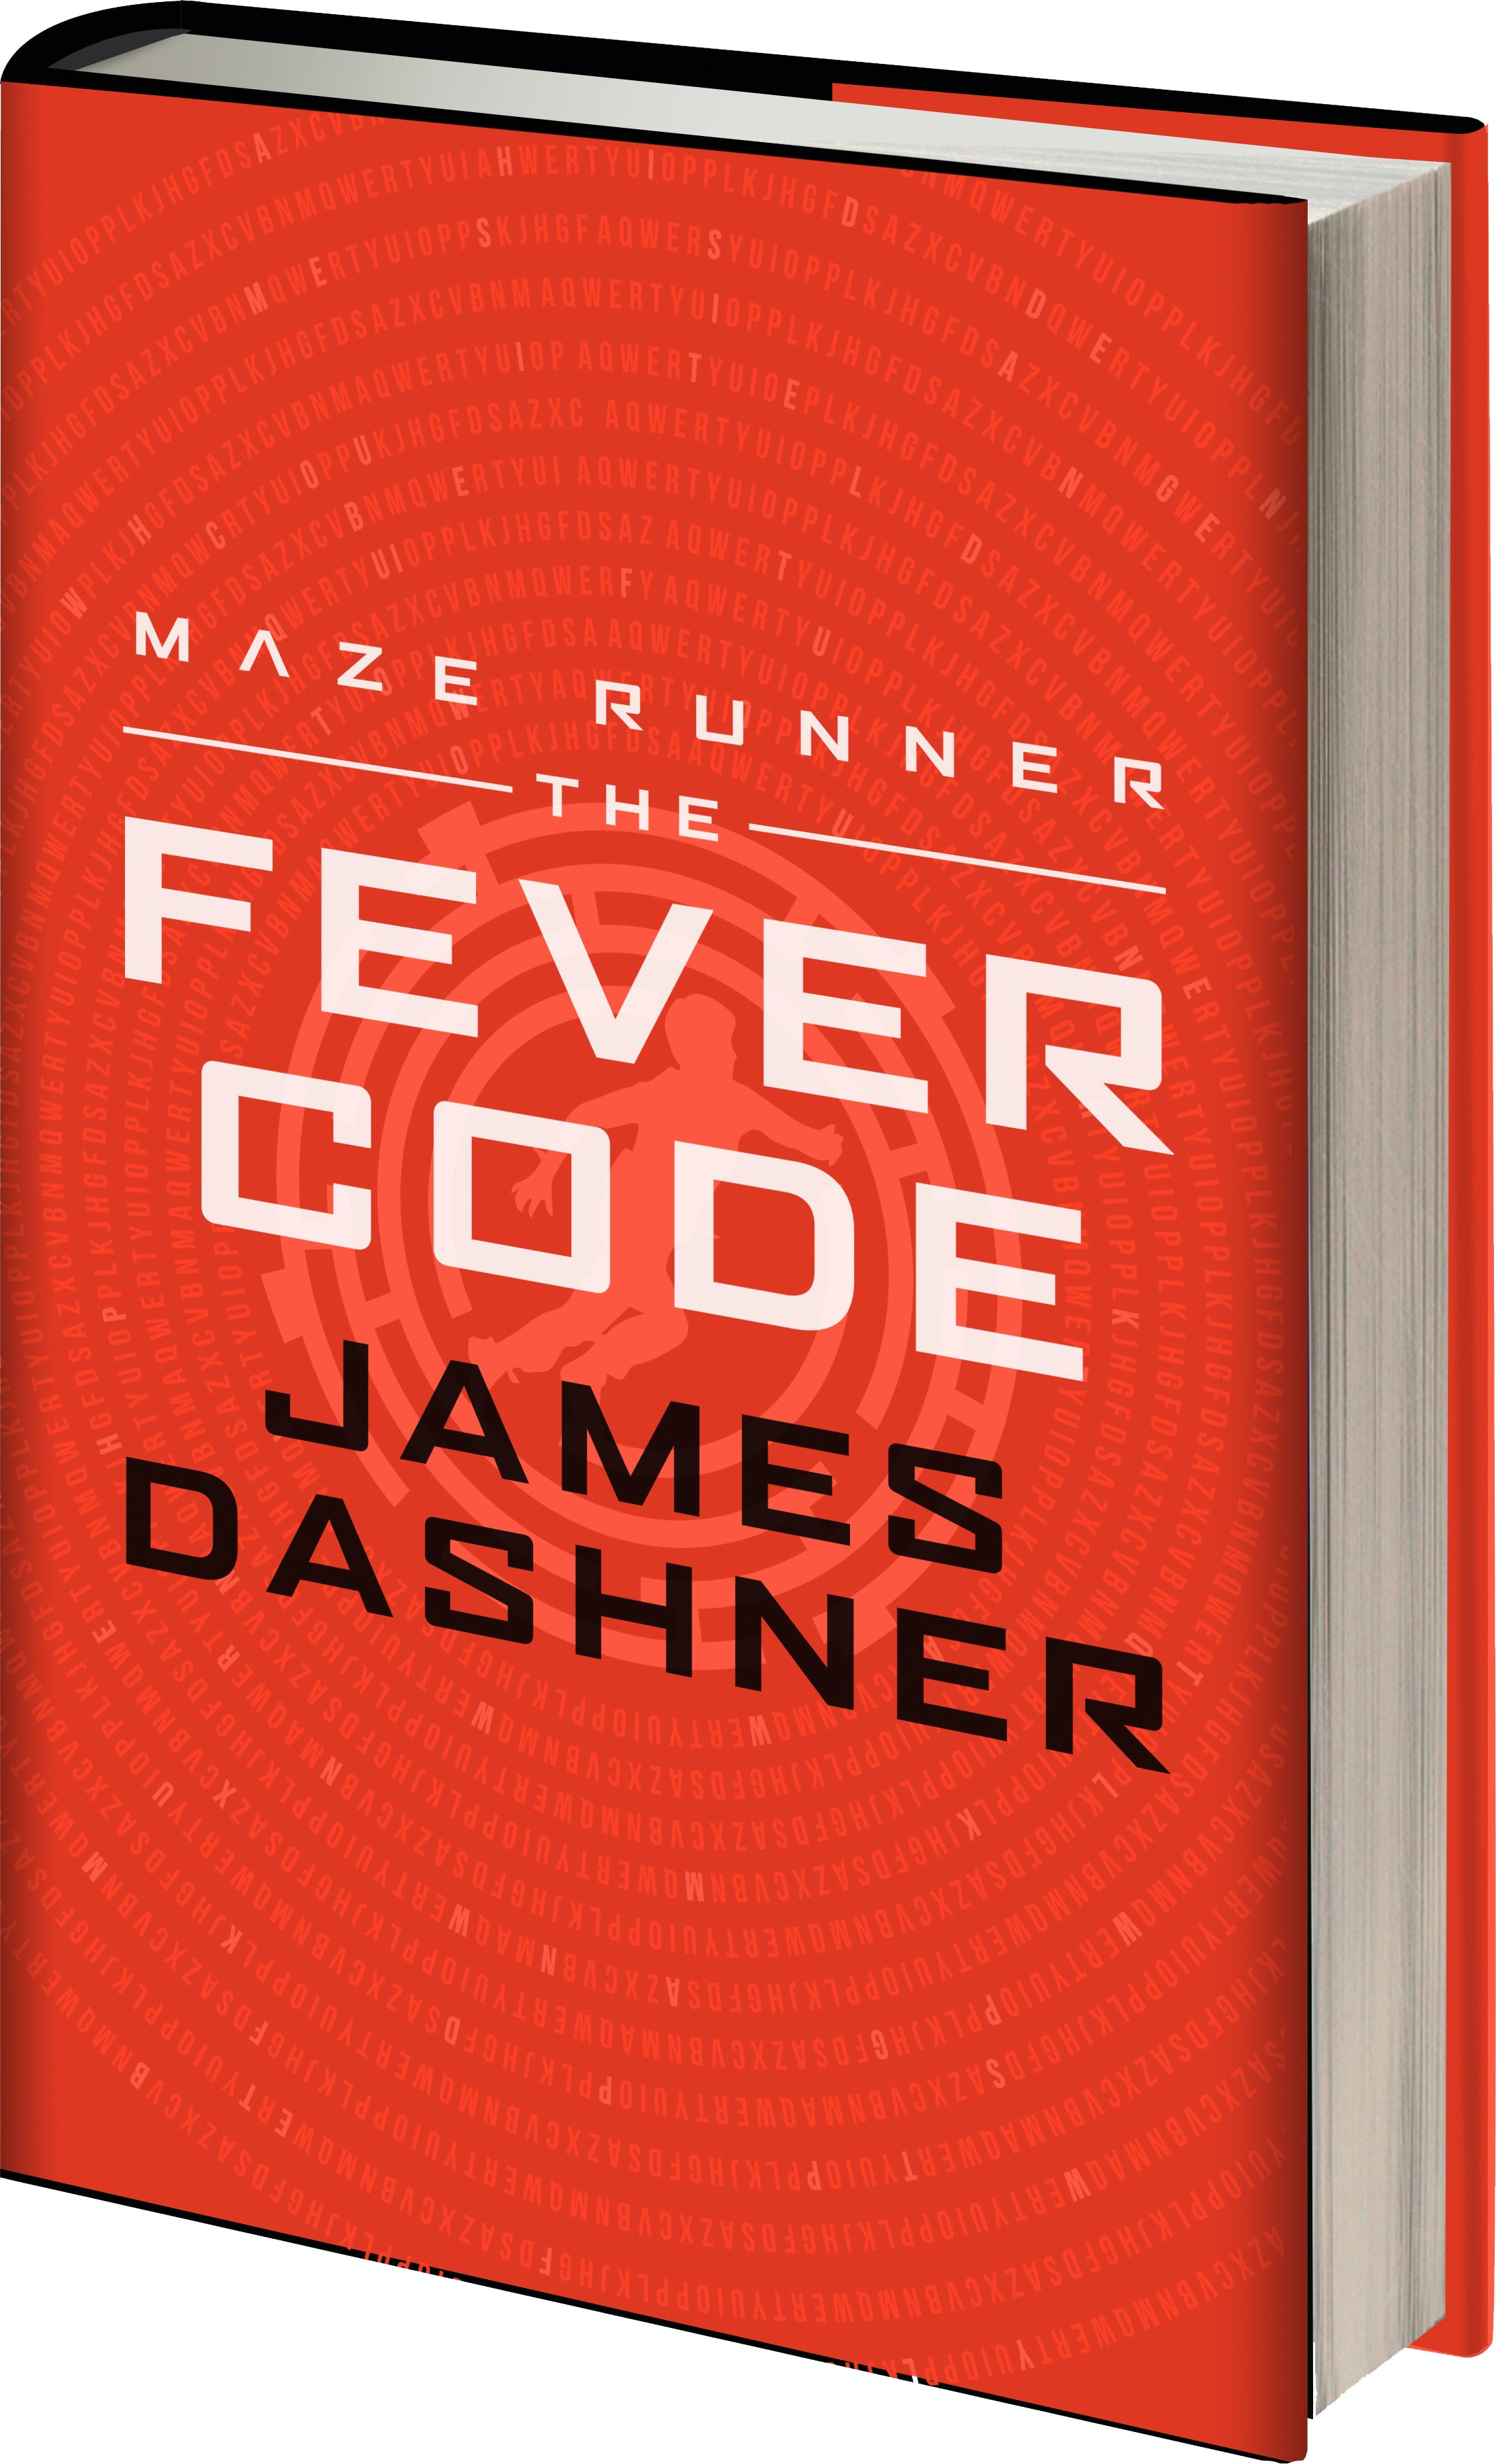 EXCLUSIVE SIGNED COPY OF THE FEVER CODE & TAKE PART IN #CRACKTHEFEVERCODE* sweepstakes